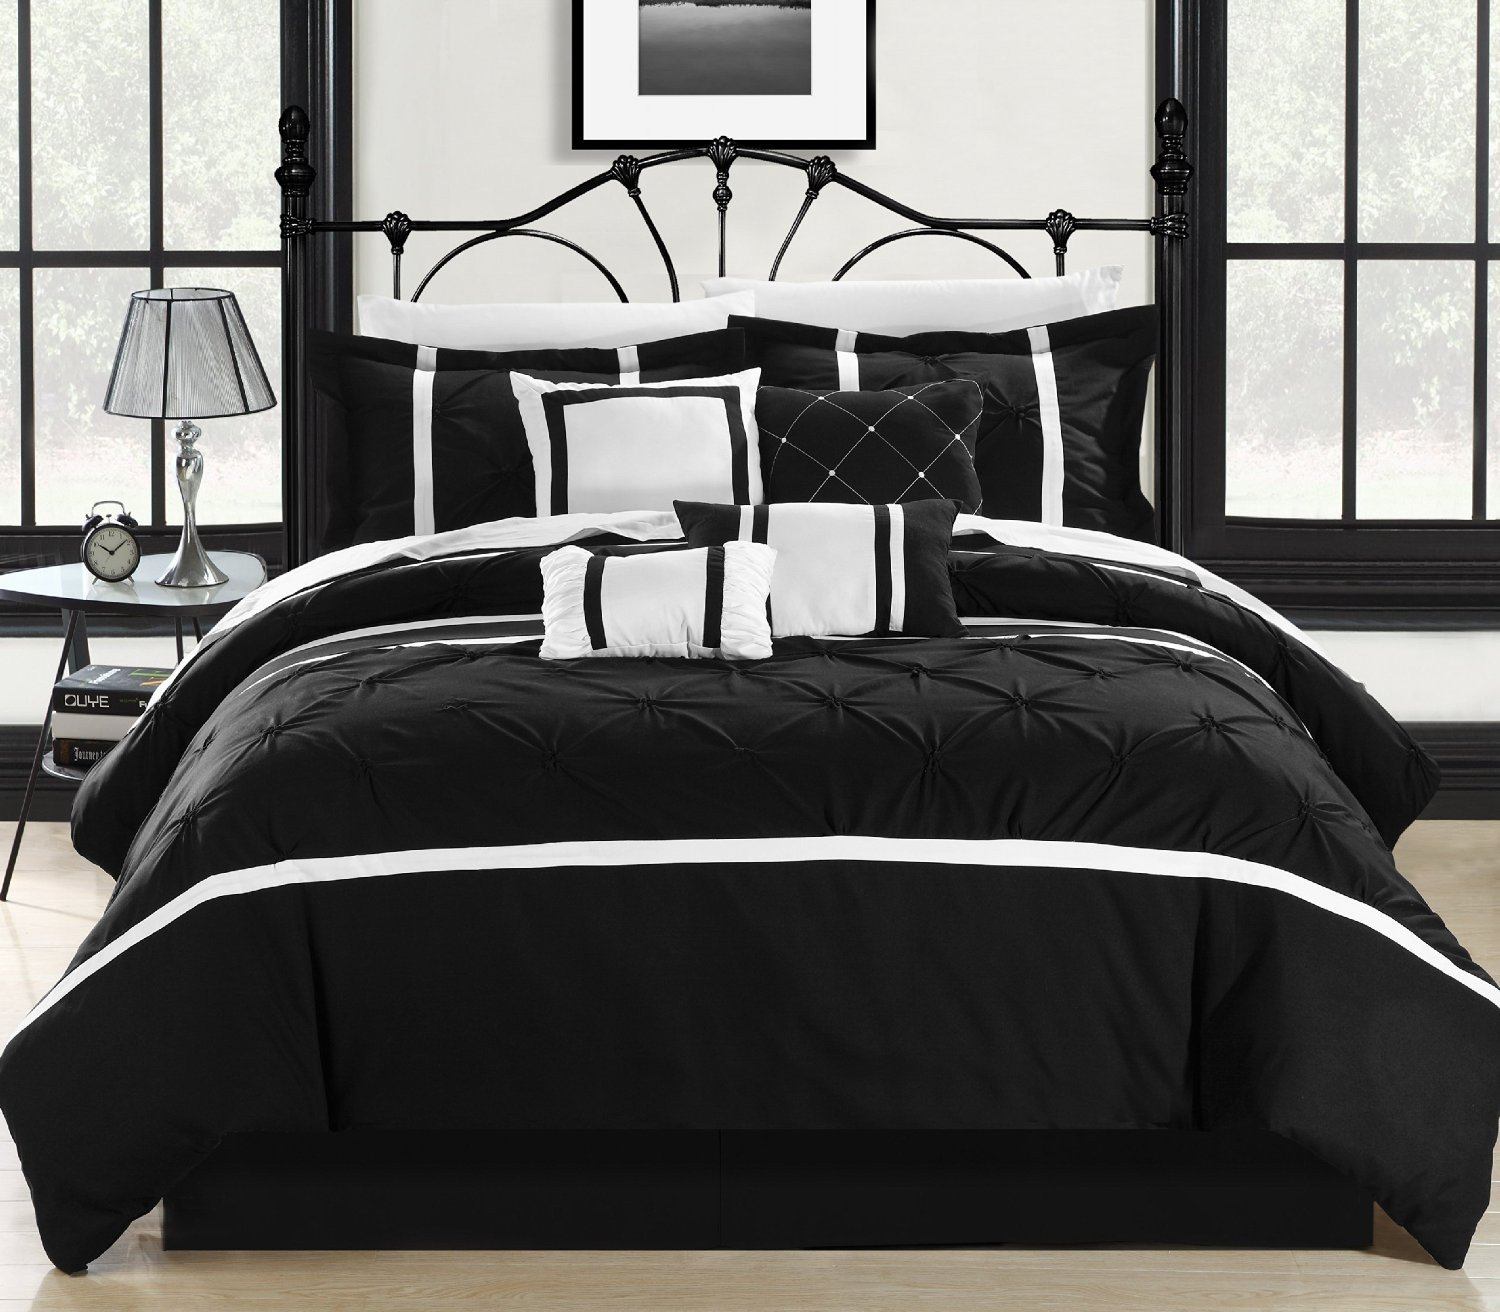 Vermont Black & White King 12 Piece Embroidered Bed In A Bag Set Sheet Set